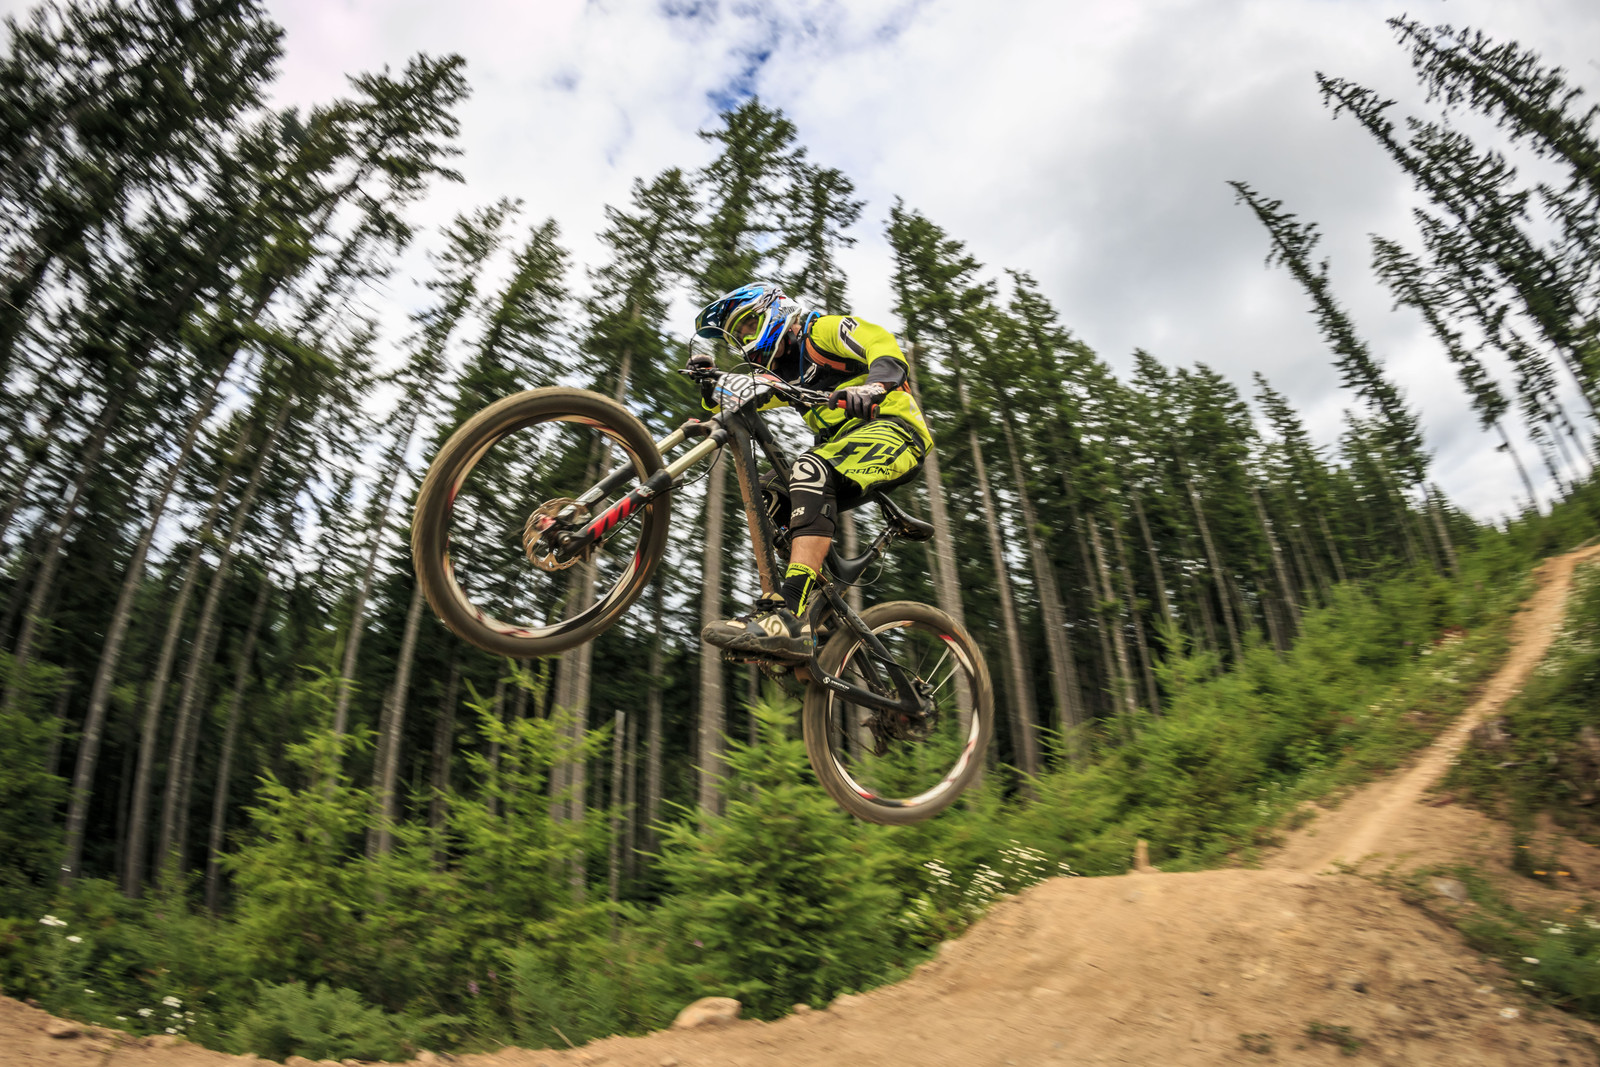 Jason McFarland, Oregon Enduro, Cold Creek - 2014 Oregon Enduro, Cold Creek - Mountain Biking Pictures - Vital MTB